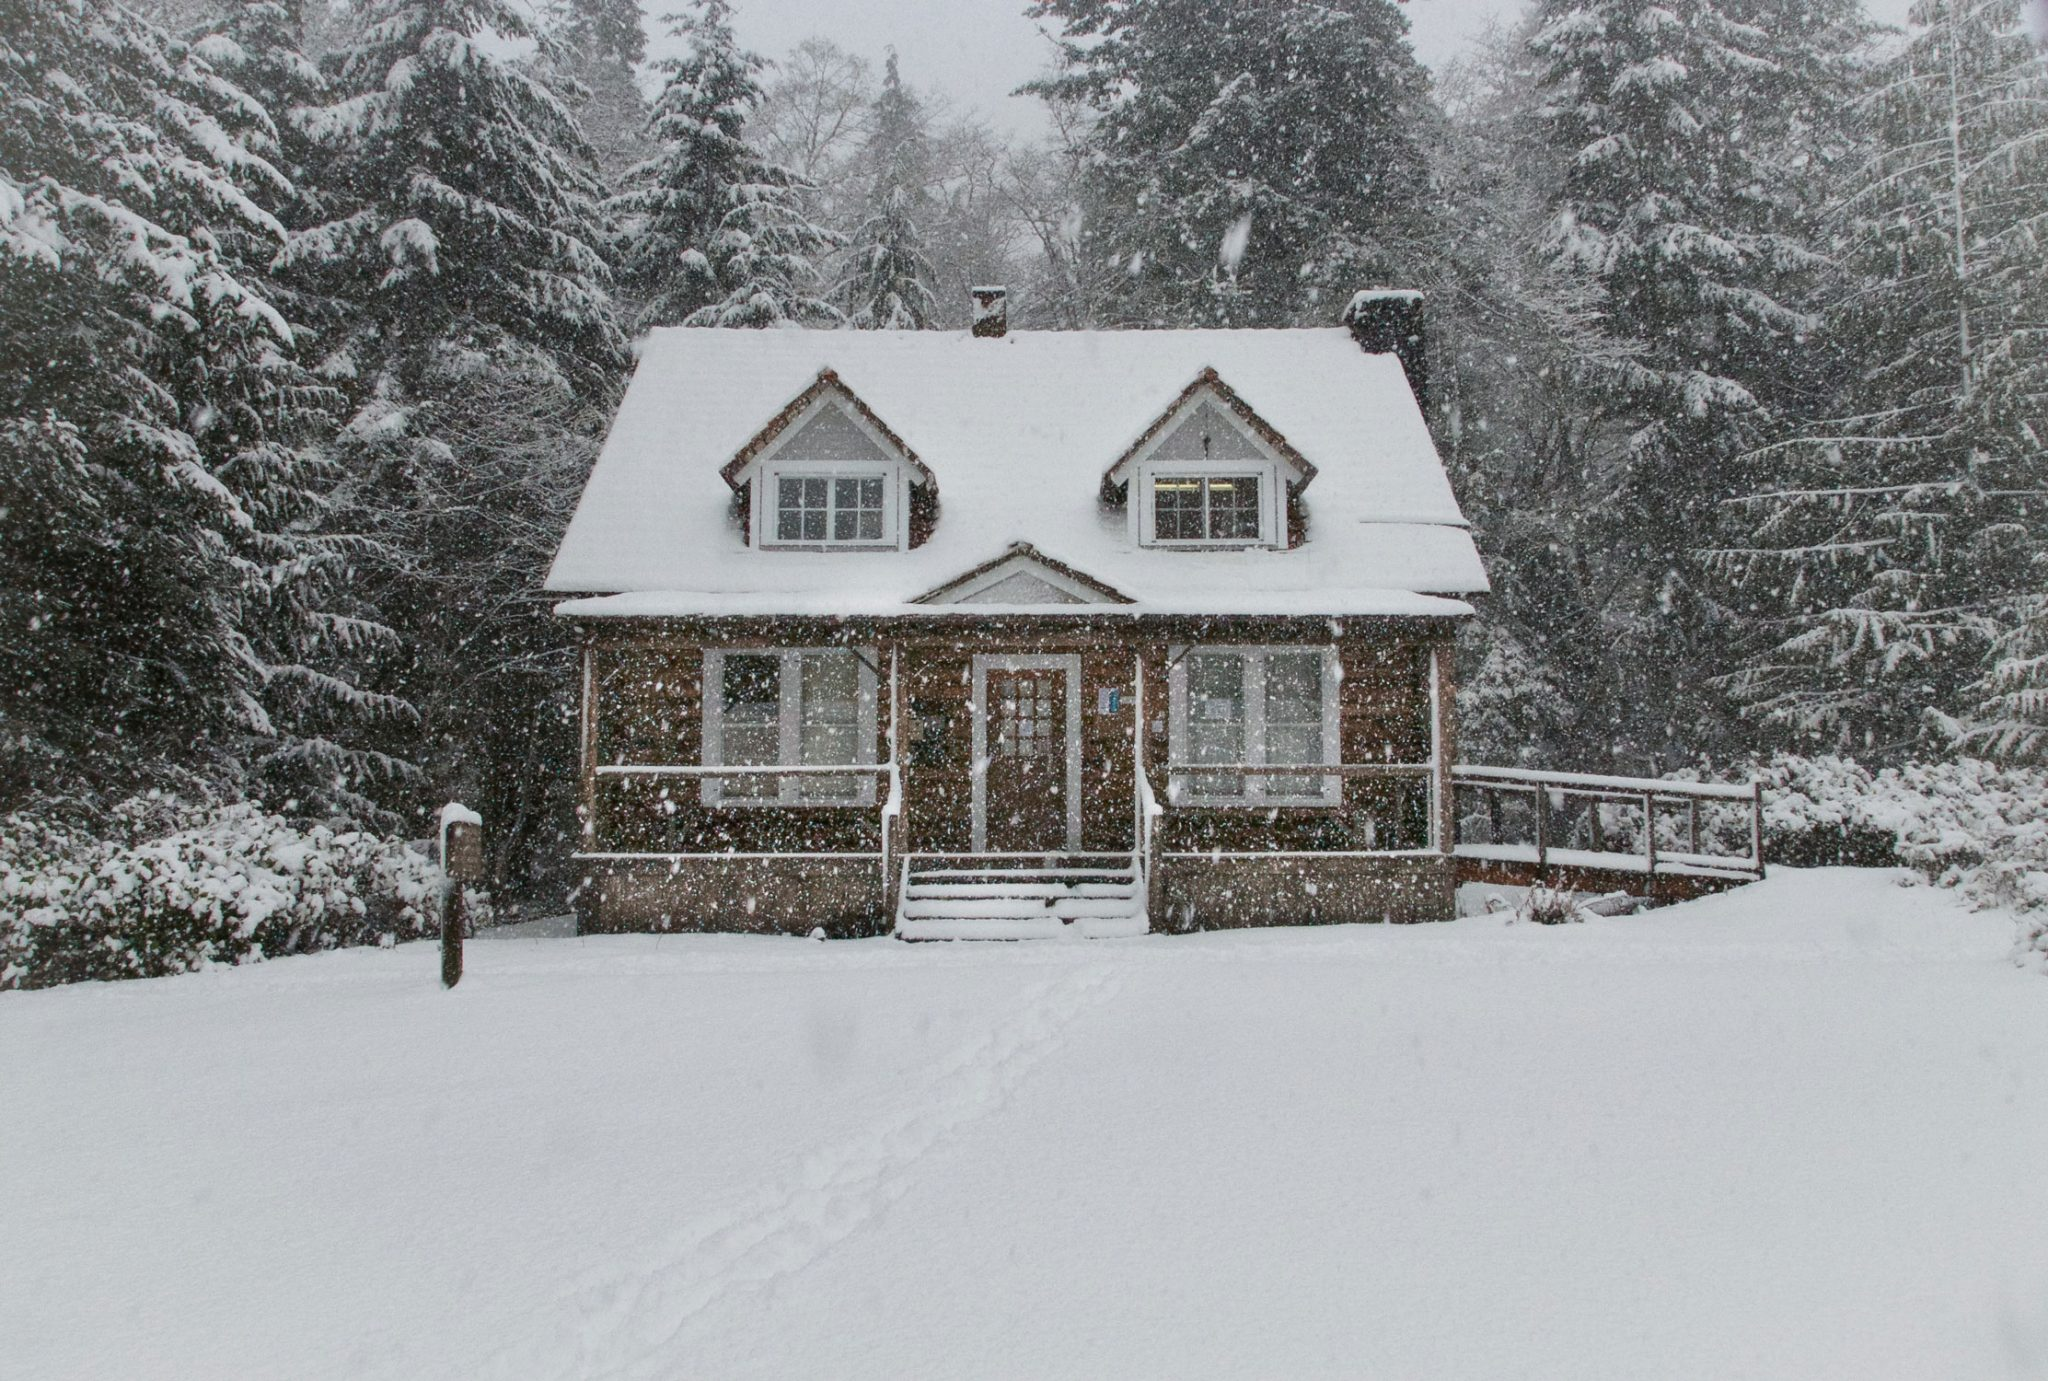 Snowy-Winter-Home-Free-From-Ticks